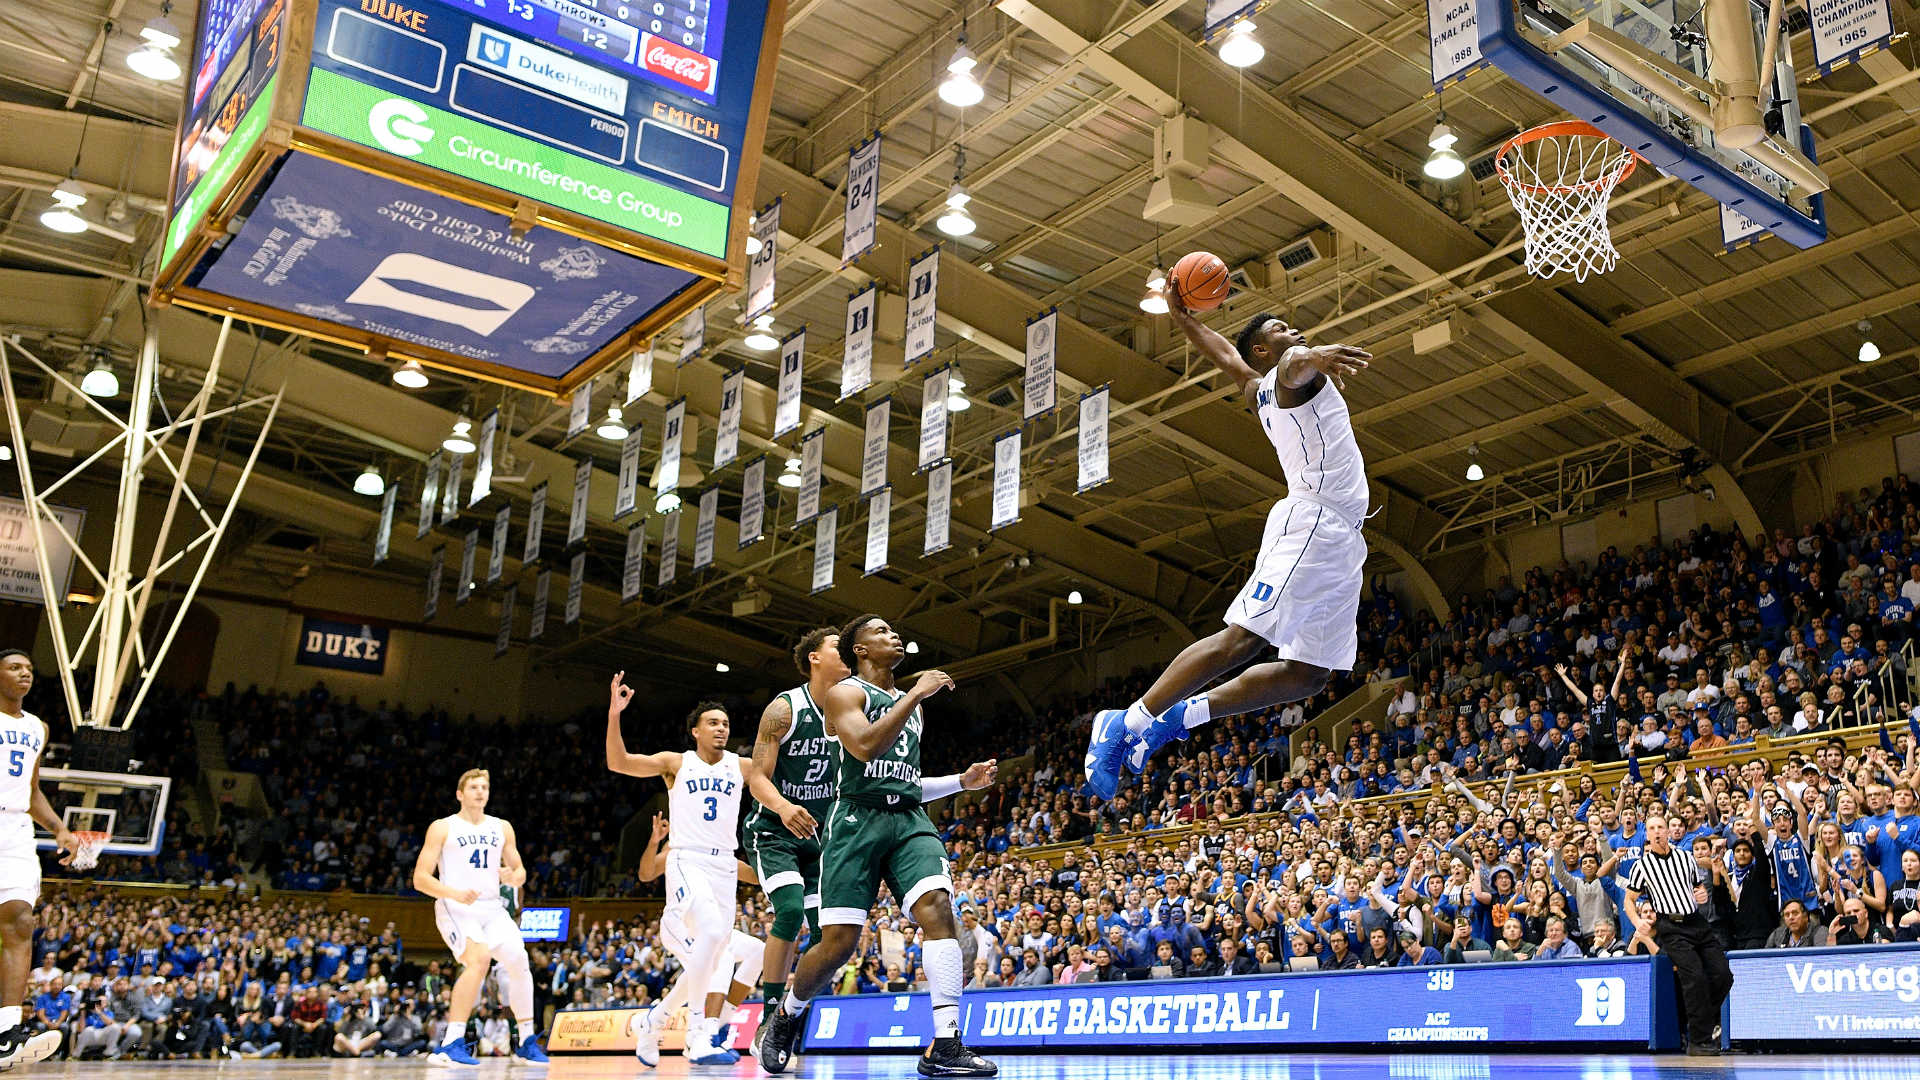 WATCH: Duke's Zion Williamson continues to dunk it all